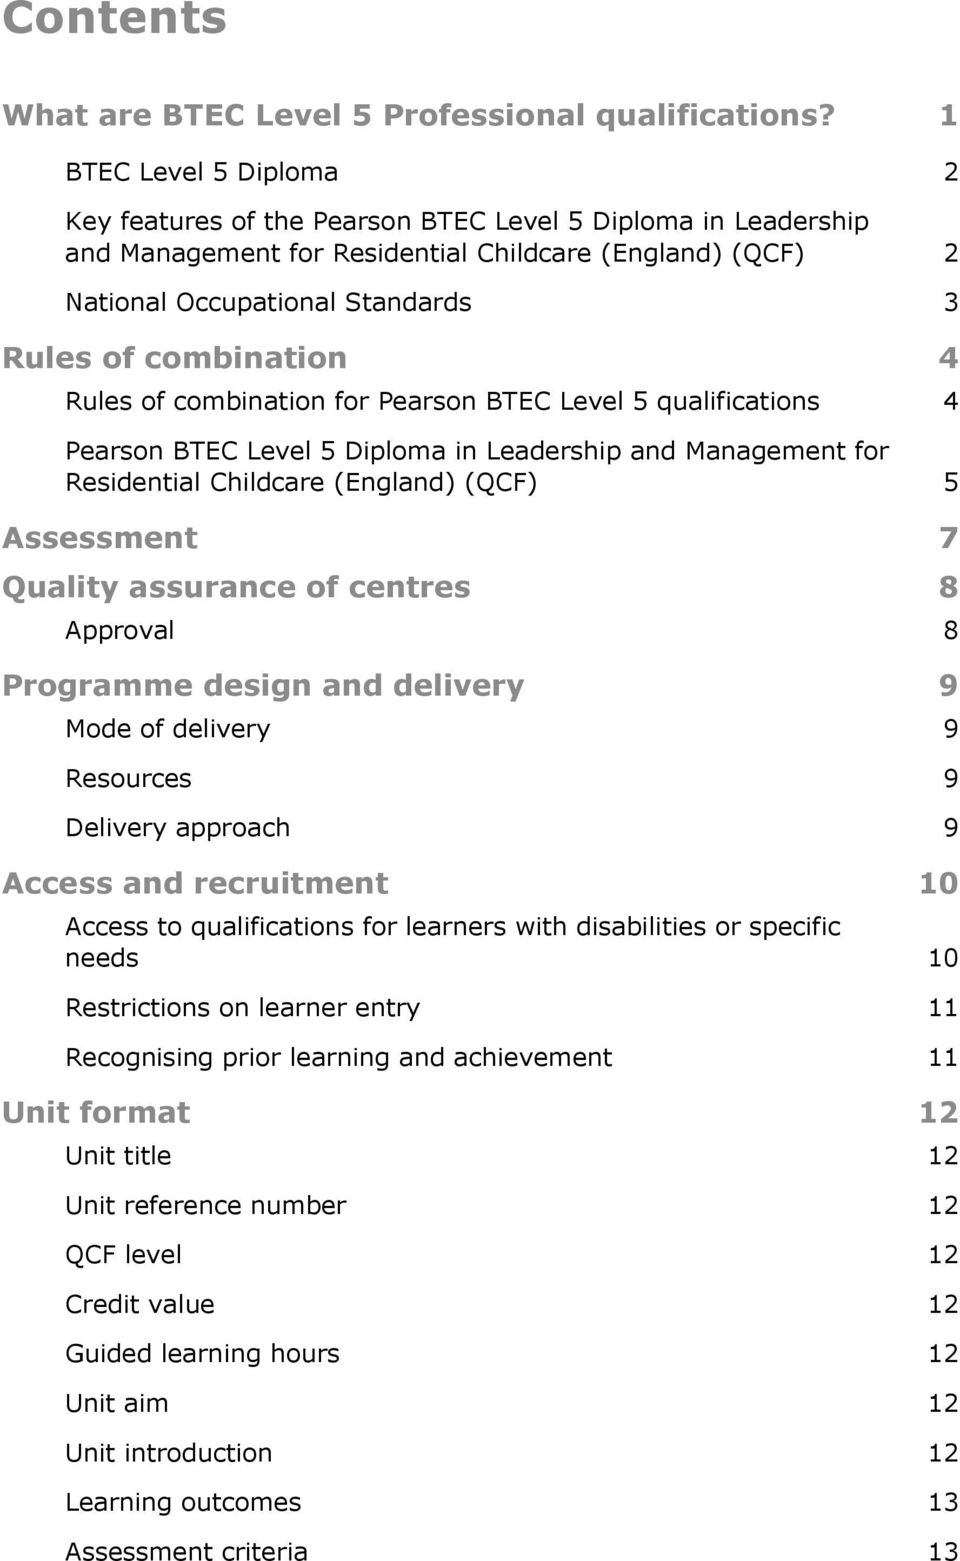 BTEC Level 5 Management And Leadership Certificate - Online